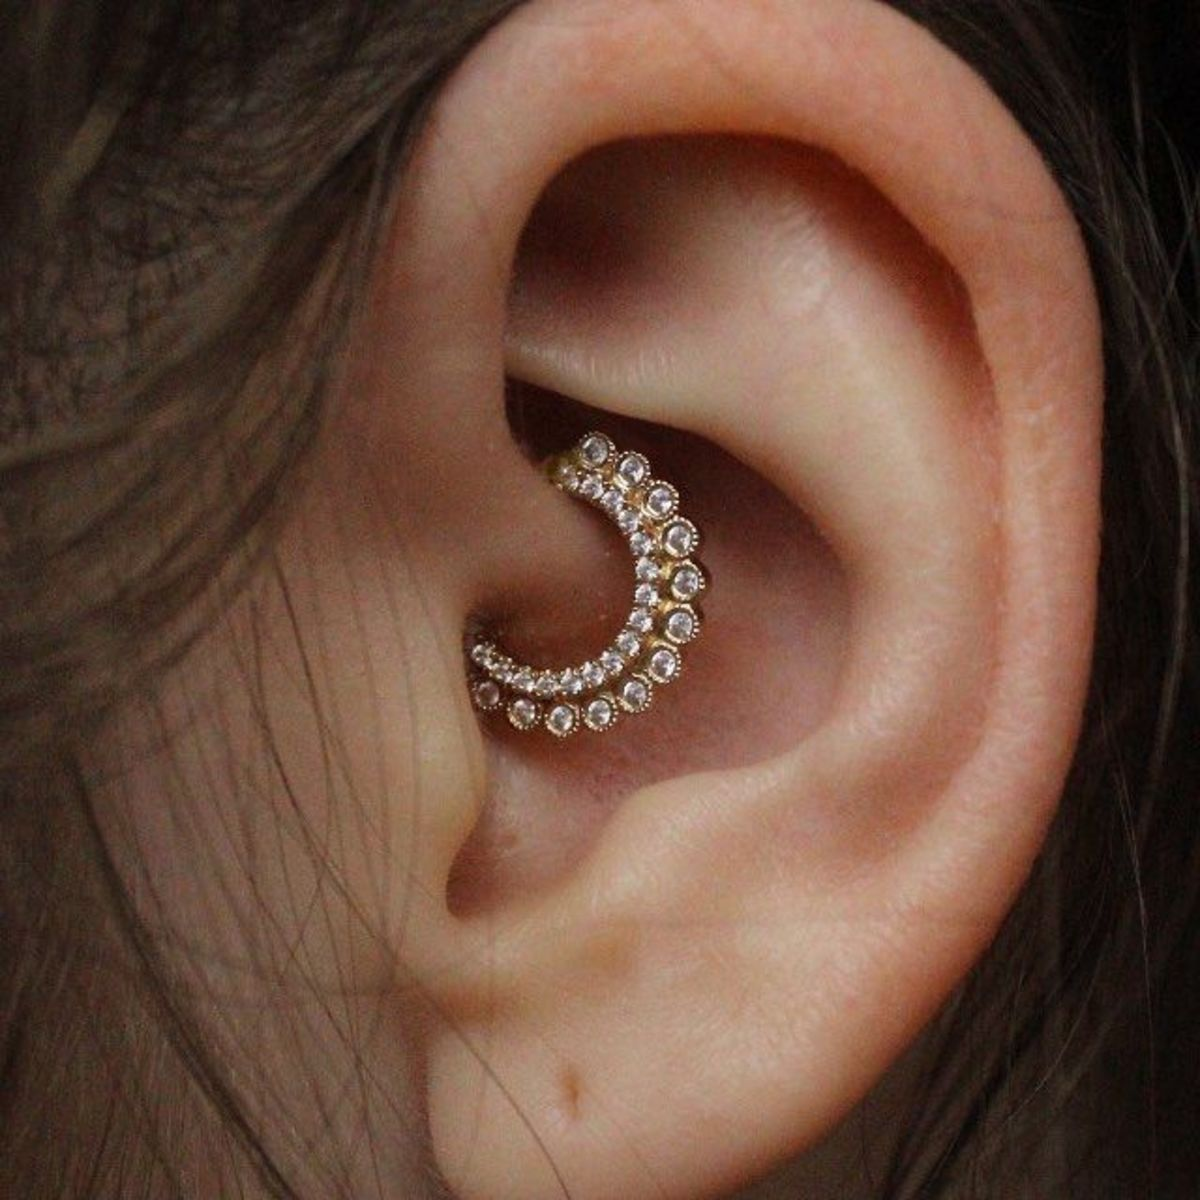 How to Heal an Infected Daith Piercing